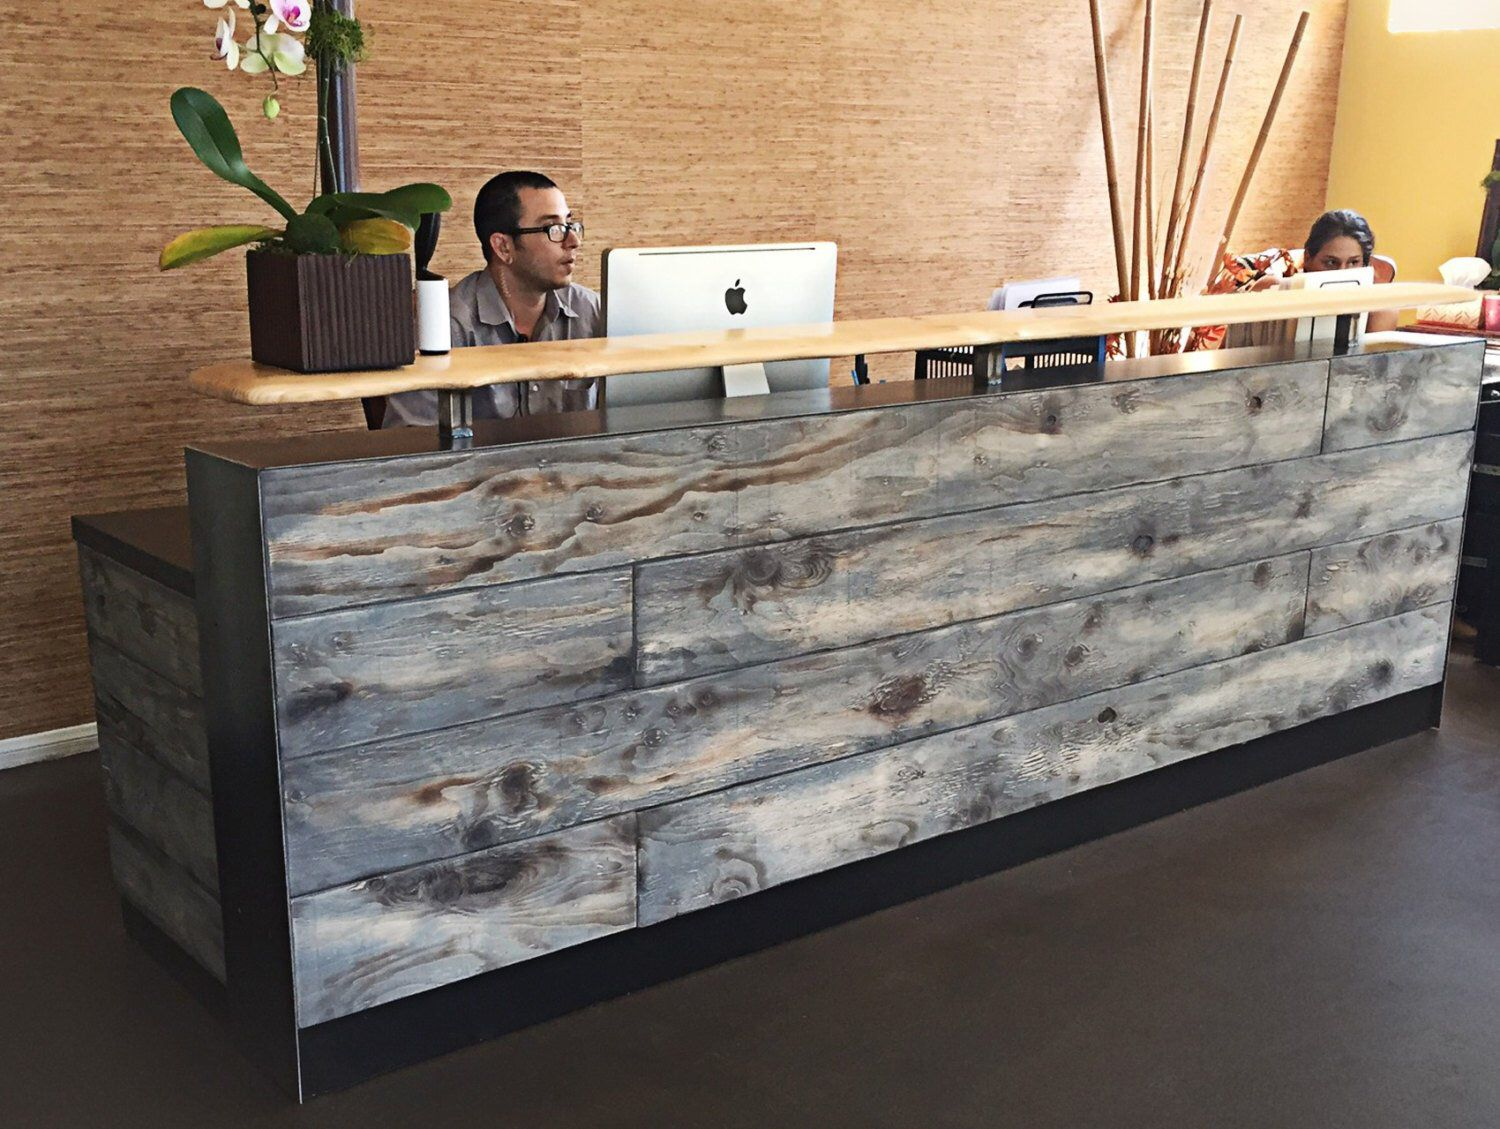 6 Foot Memphis Reception Desk With Images Wood Reception Desk Reception Desk Sales Desk